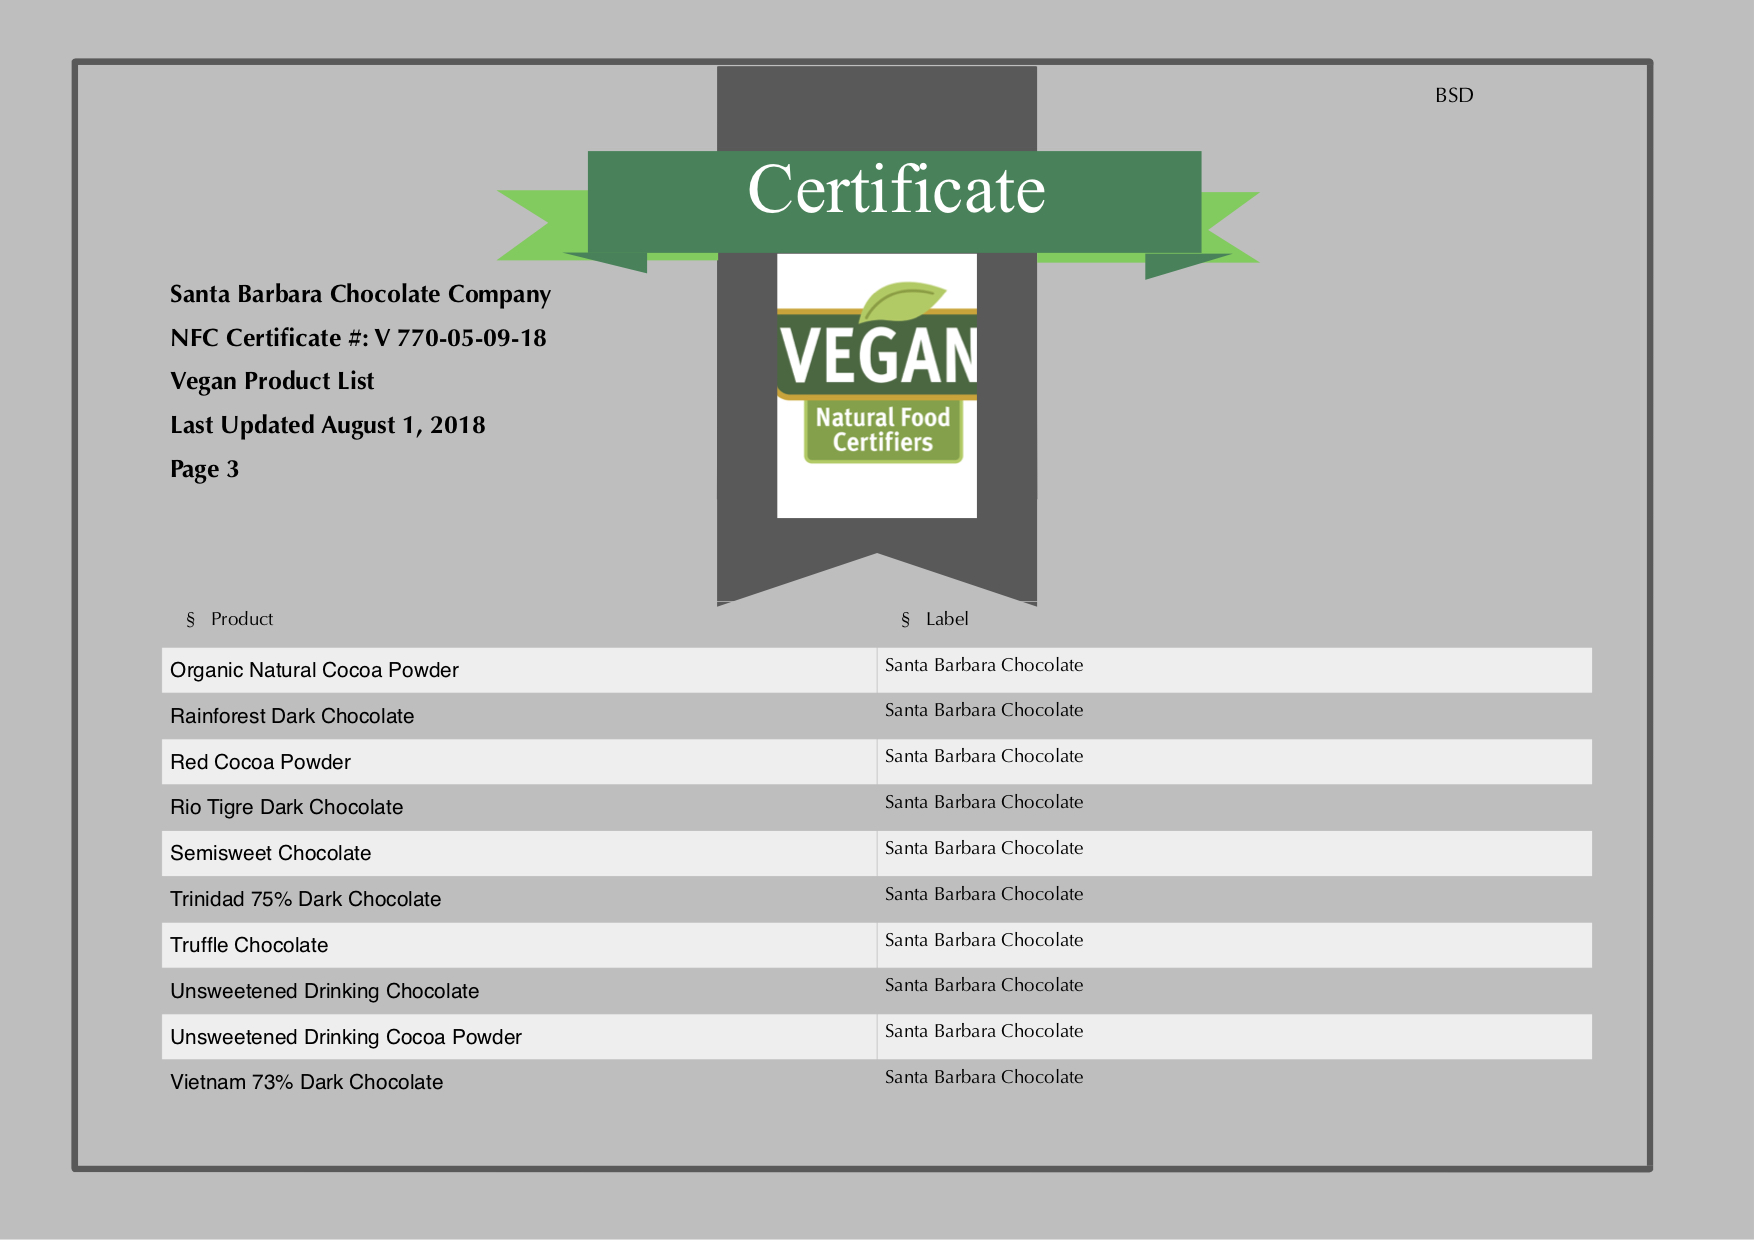 santa-barbara-chocolate-vegan-cert-2018-page-4-.jpg